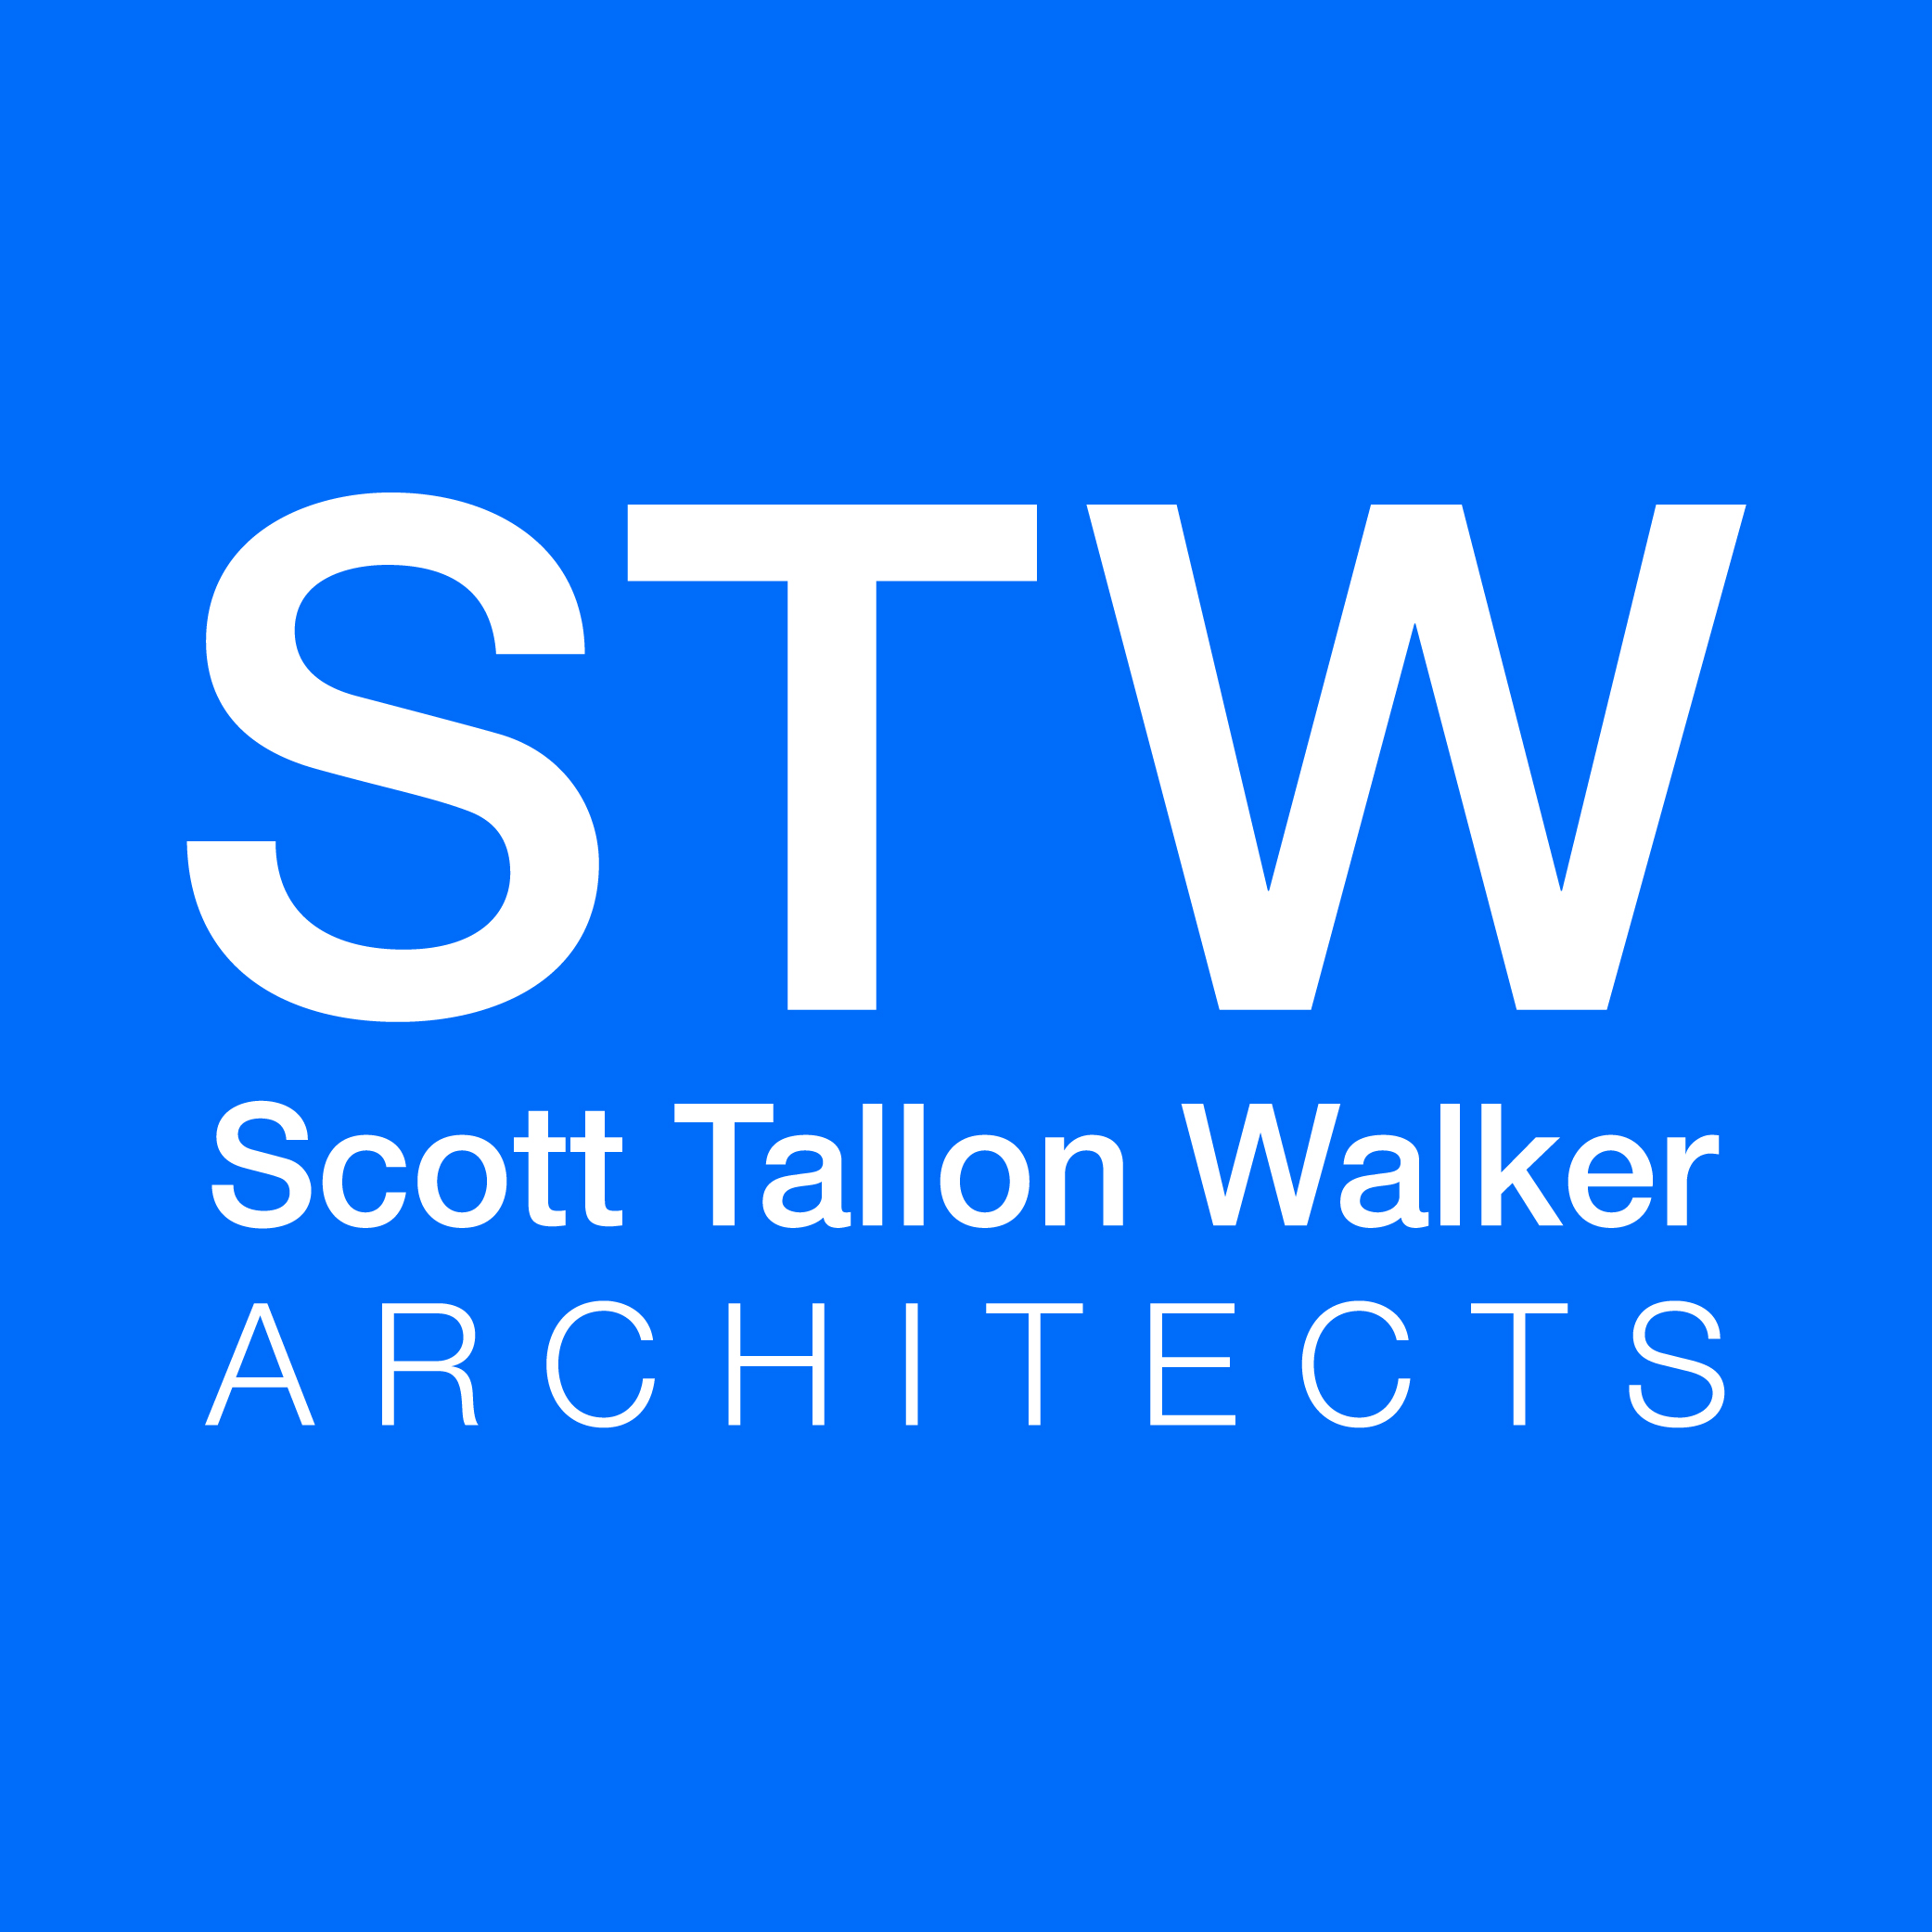 Scott Tallon Walker